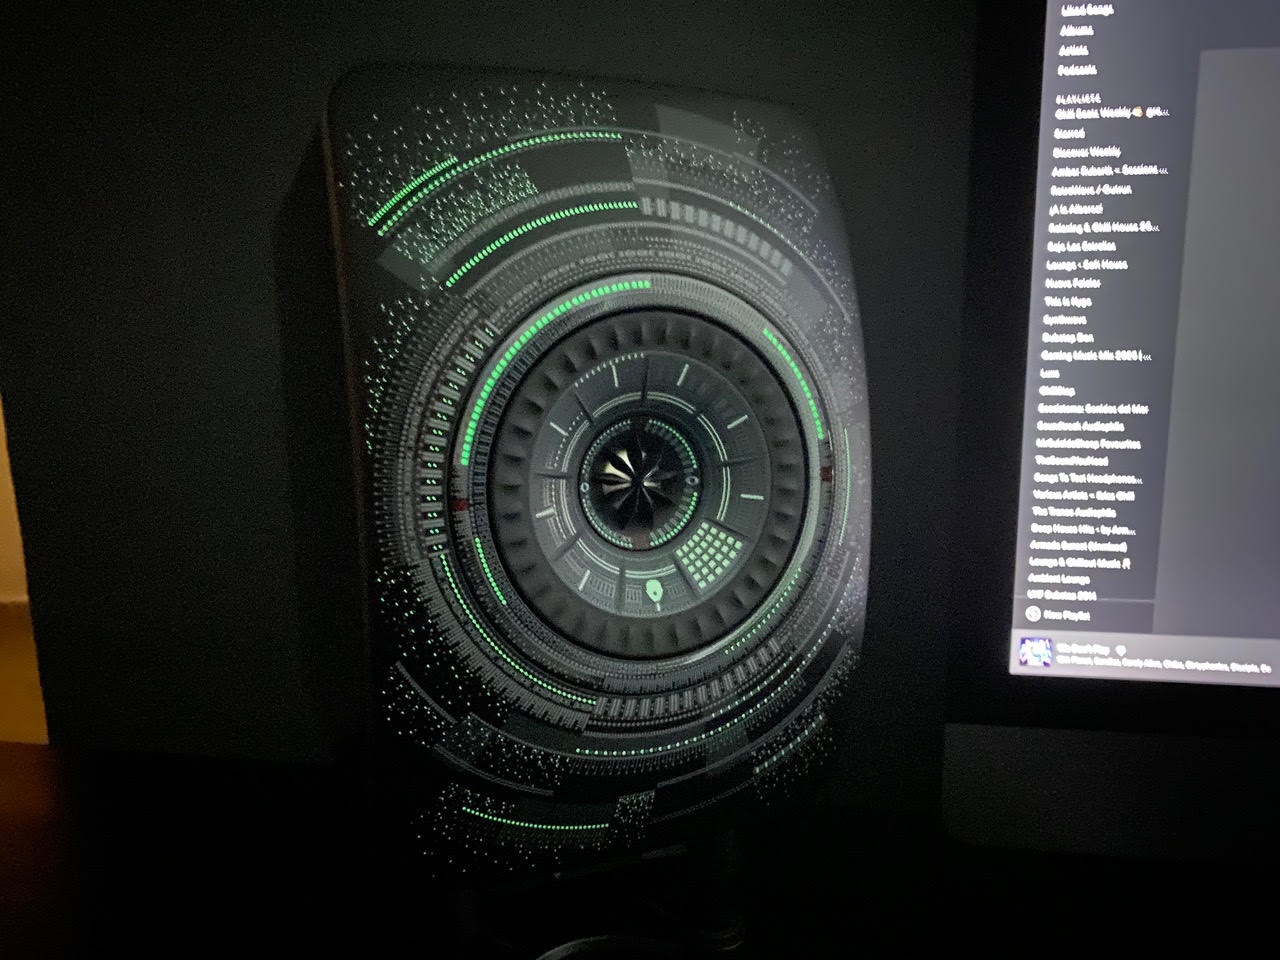 You know it's a cool setup when a speaker looks like it takes its design straight from Star Wars.